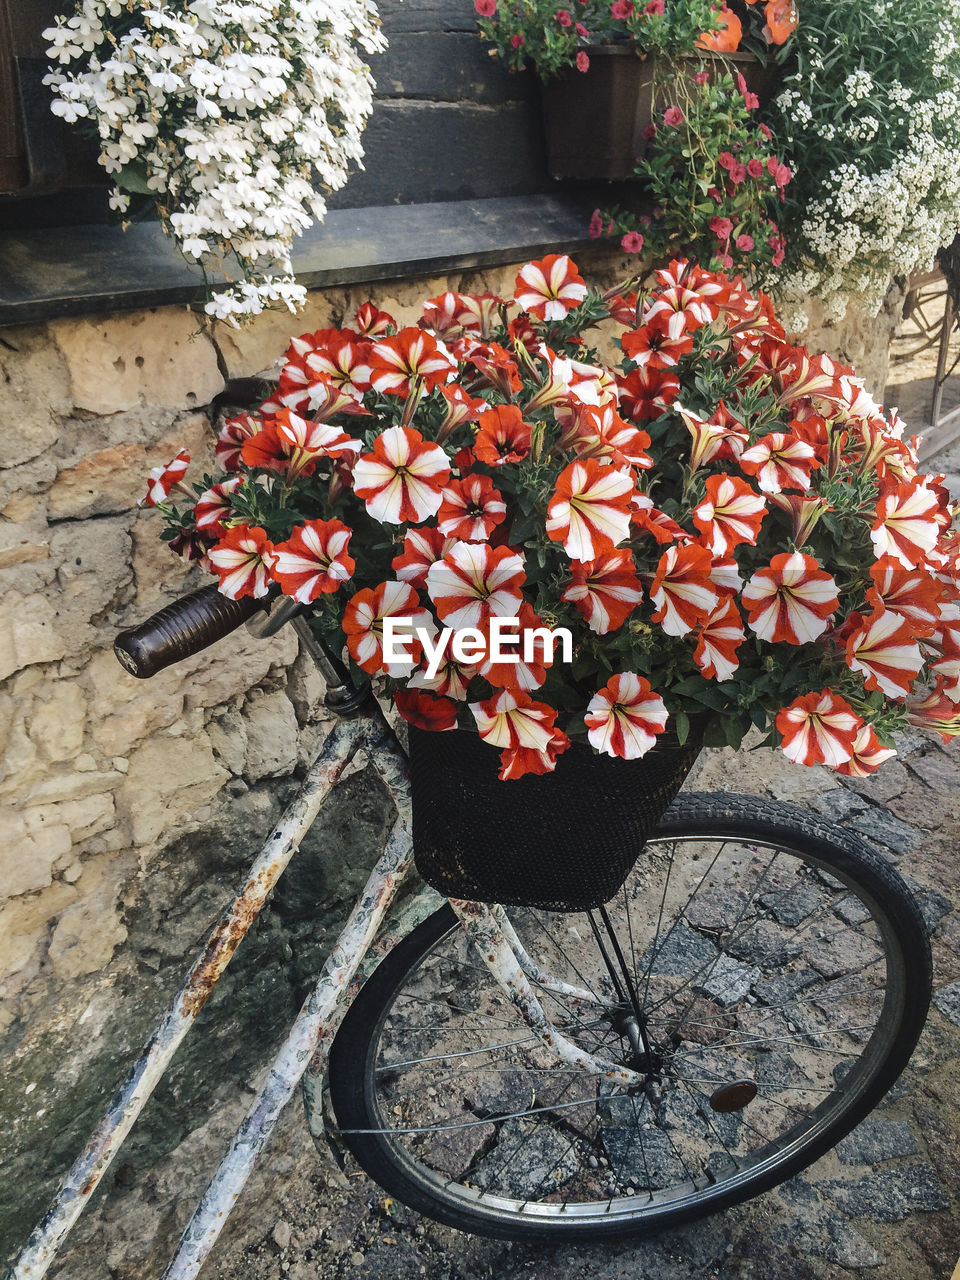 Bicycle with basket full of flowers